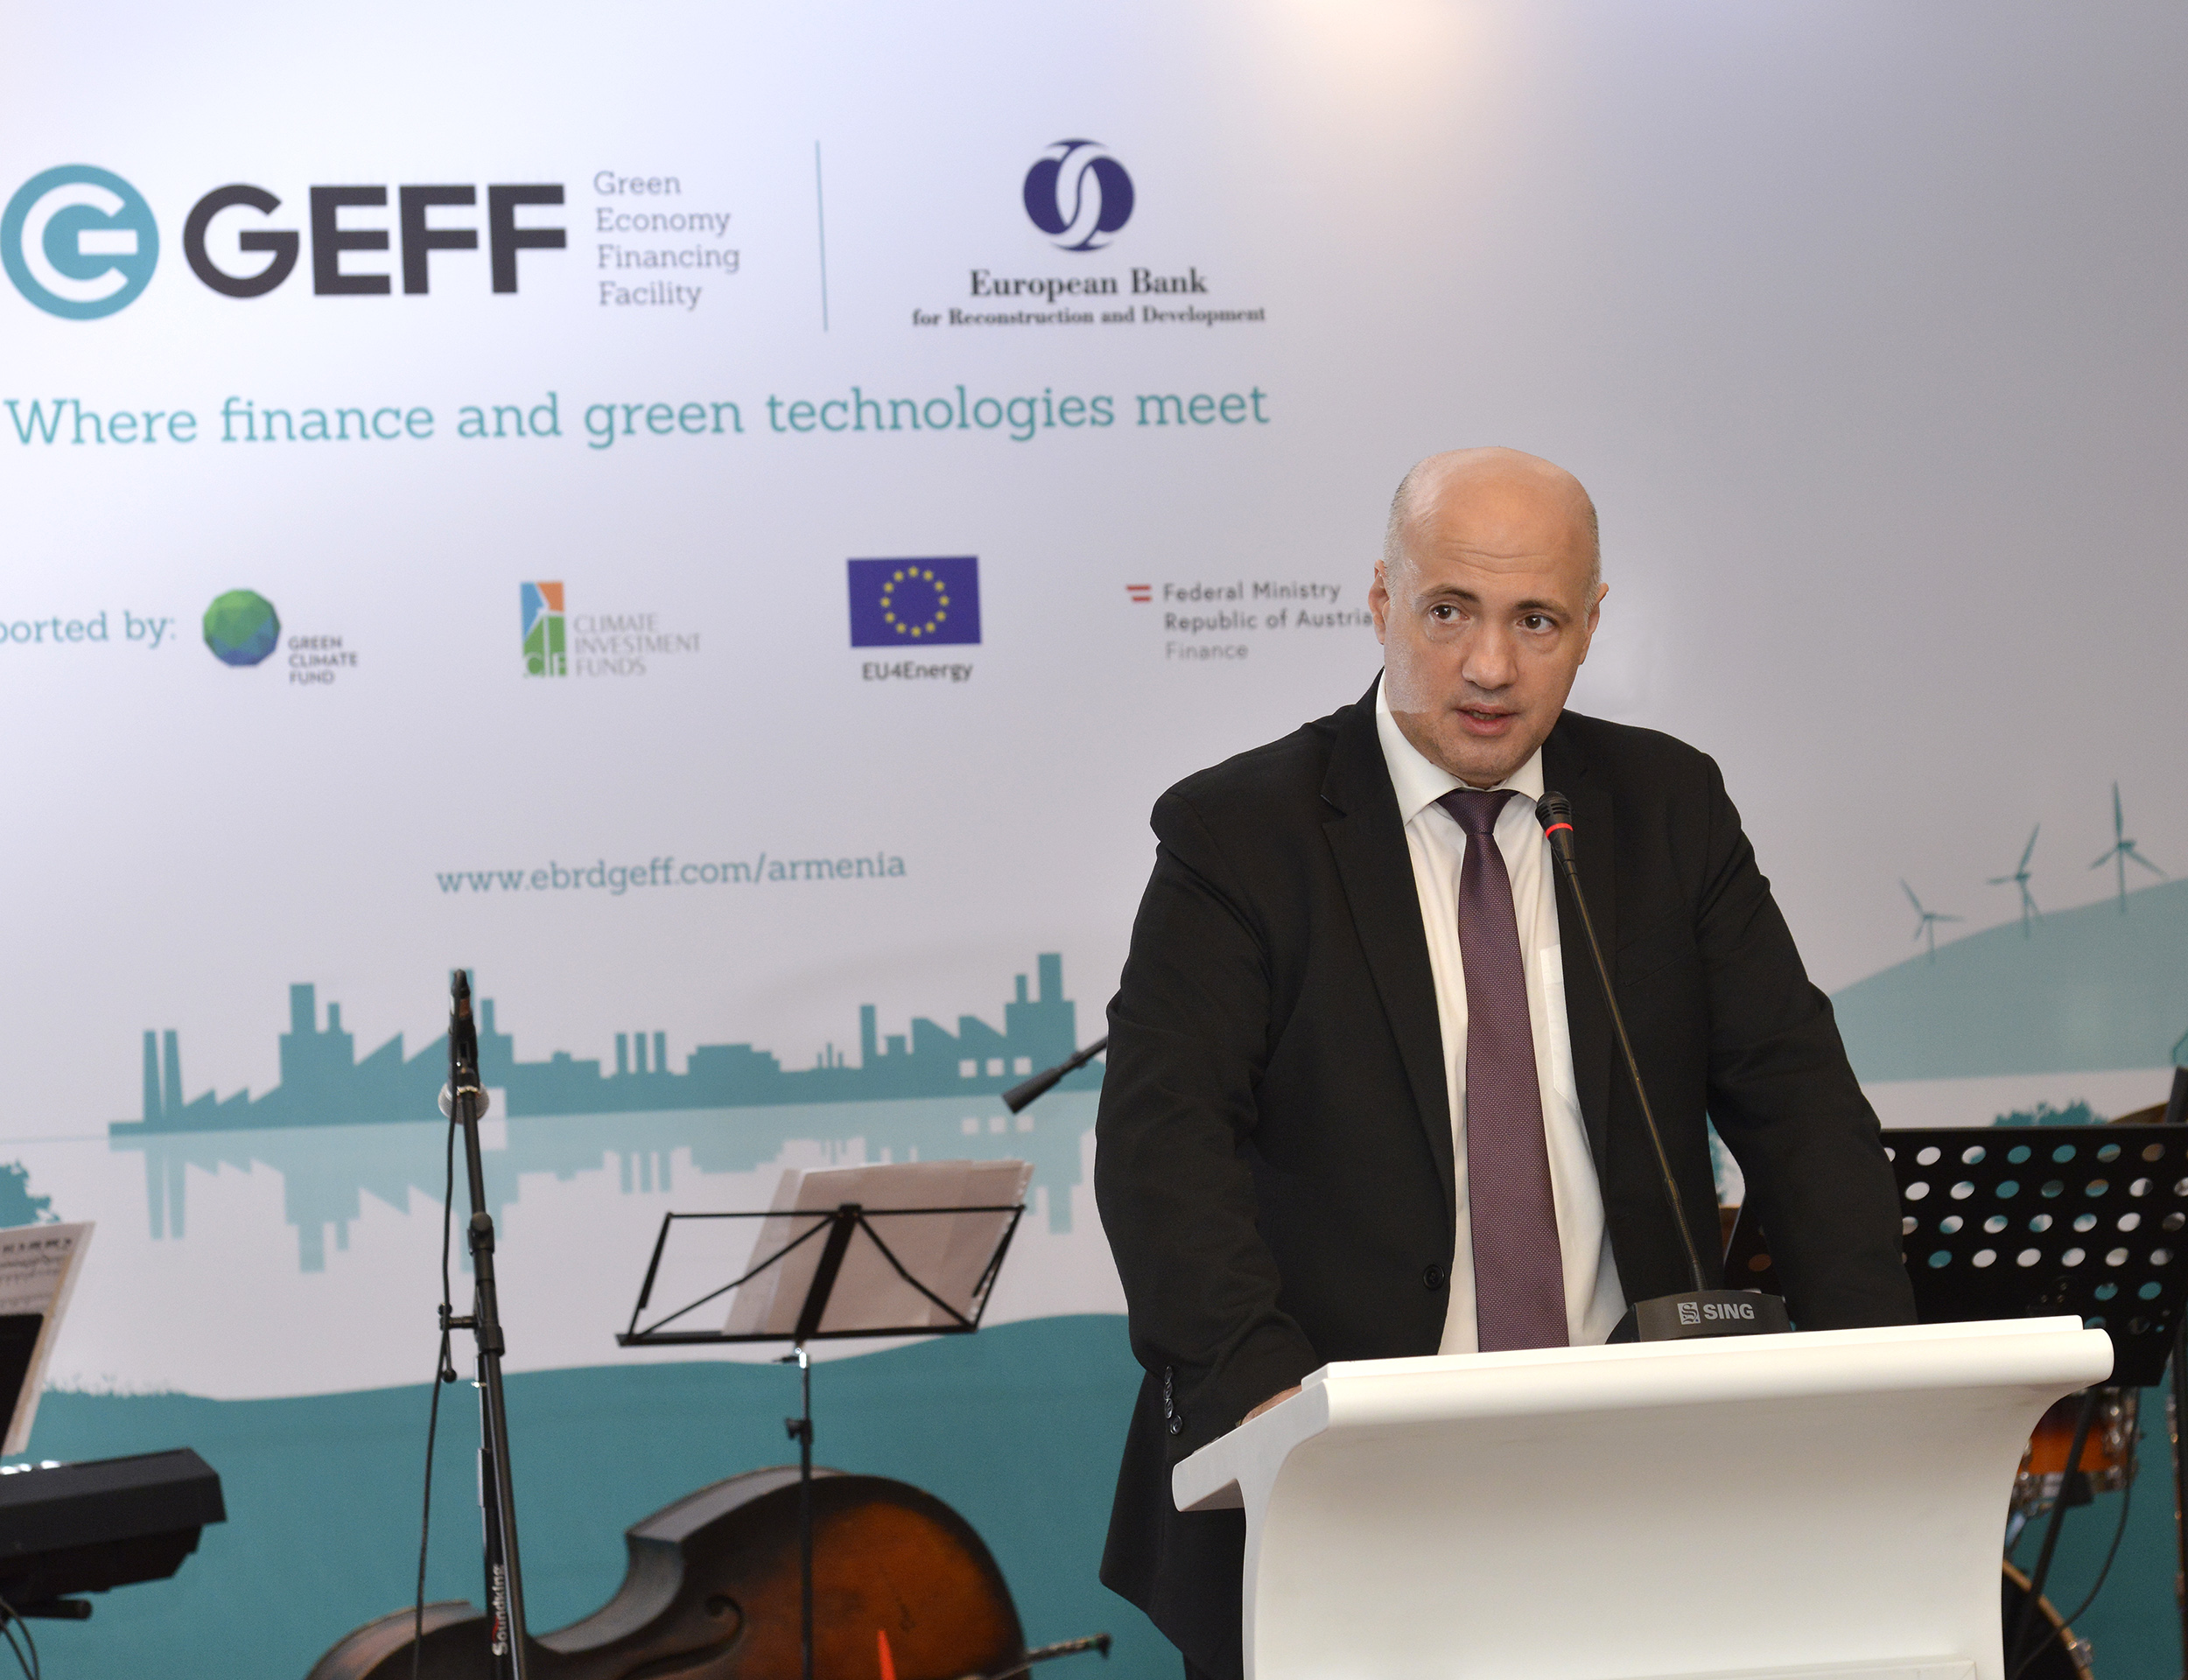 EBRD deepens green finance in Armenia